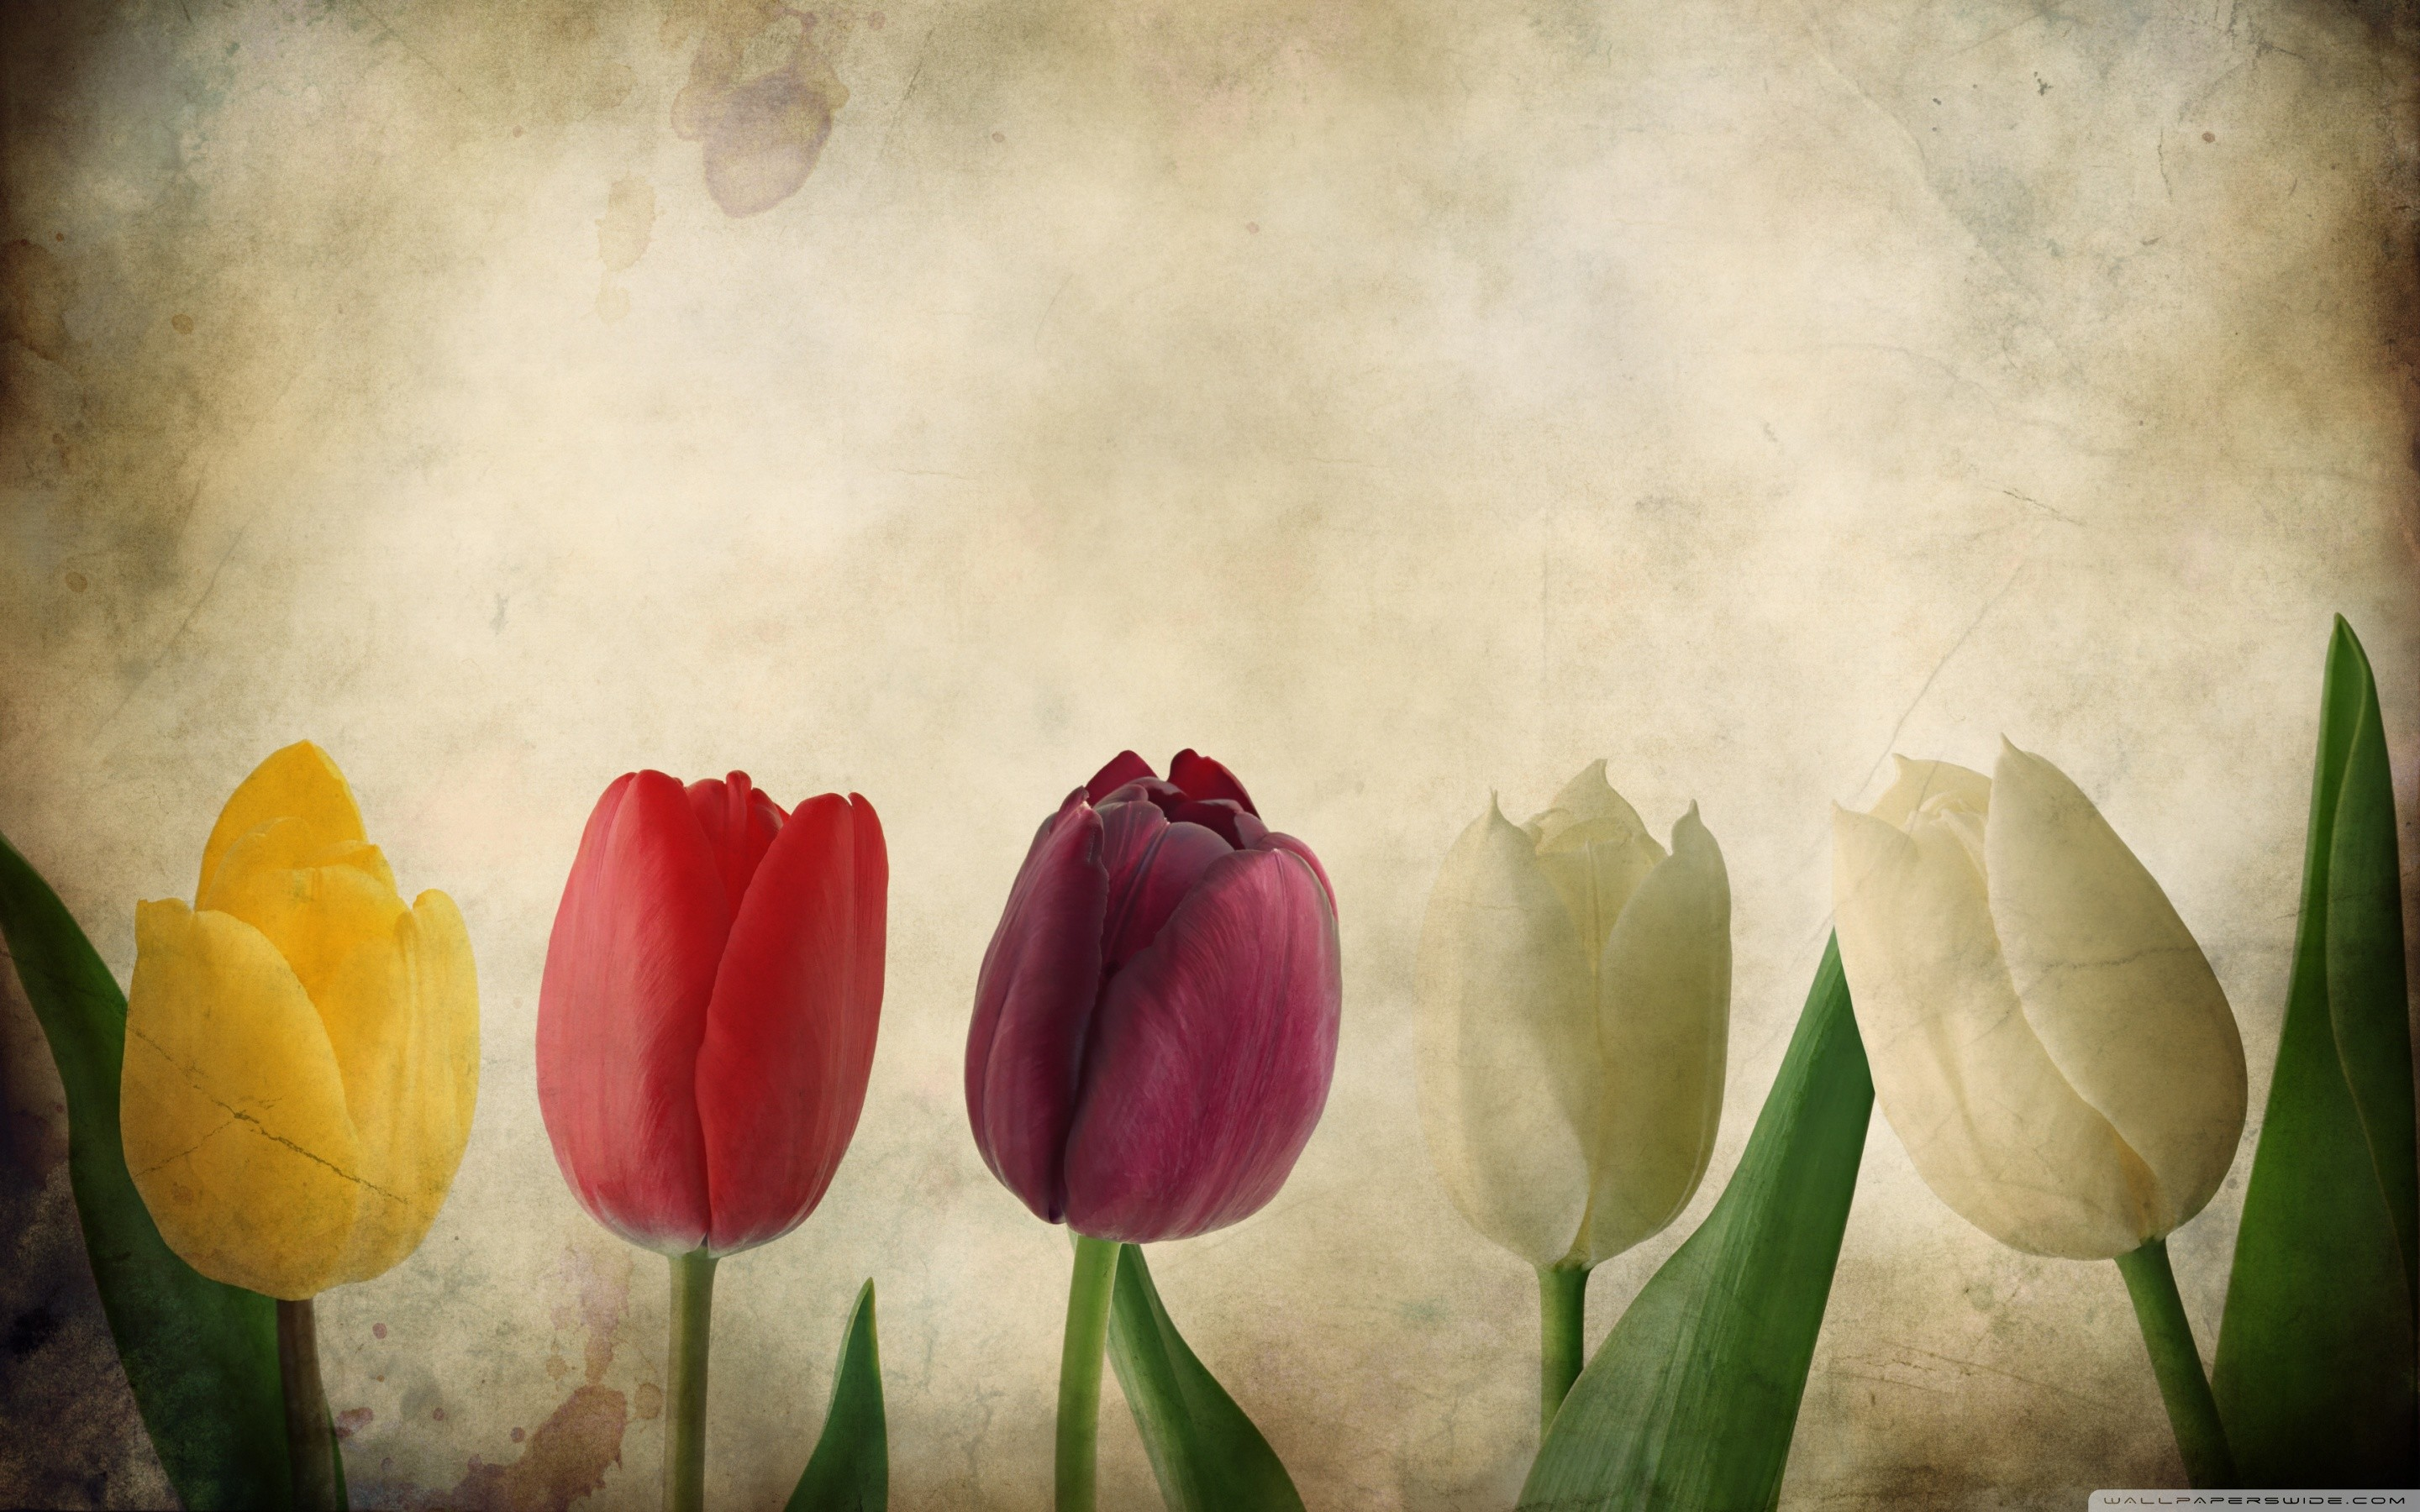 tulip-flower | Tulip | Pinterest | Tulips flowers, Flower images wallpapers  and Flower images